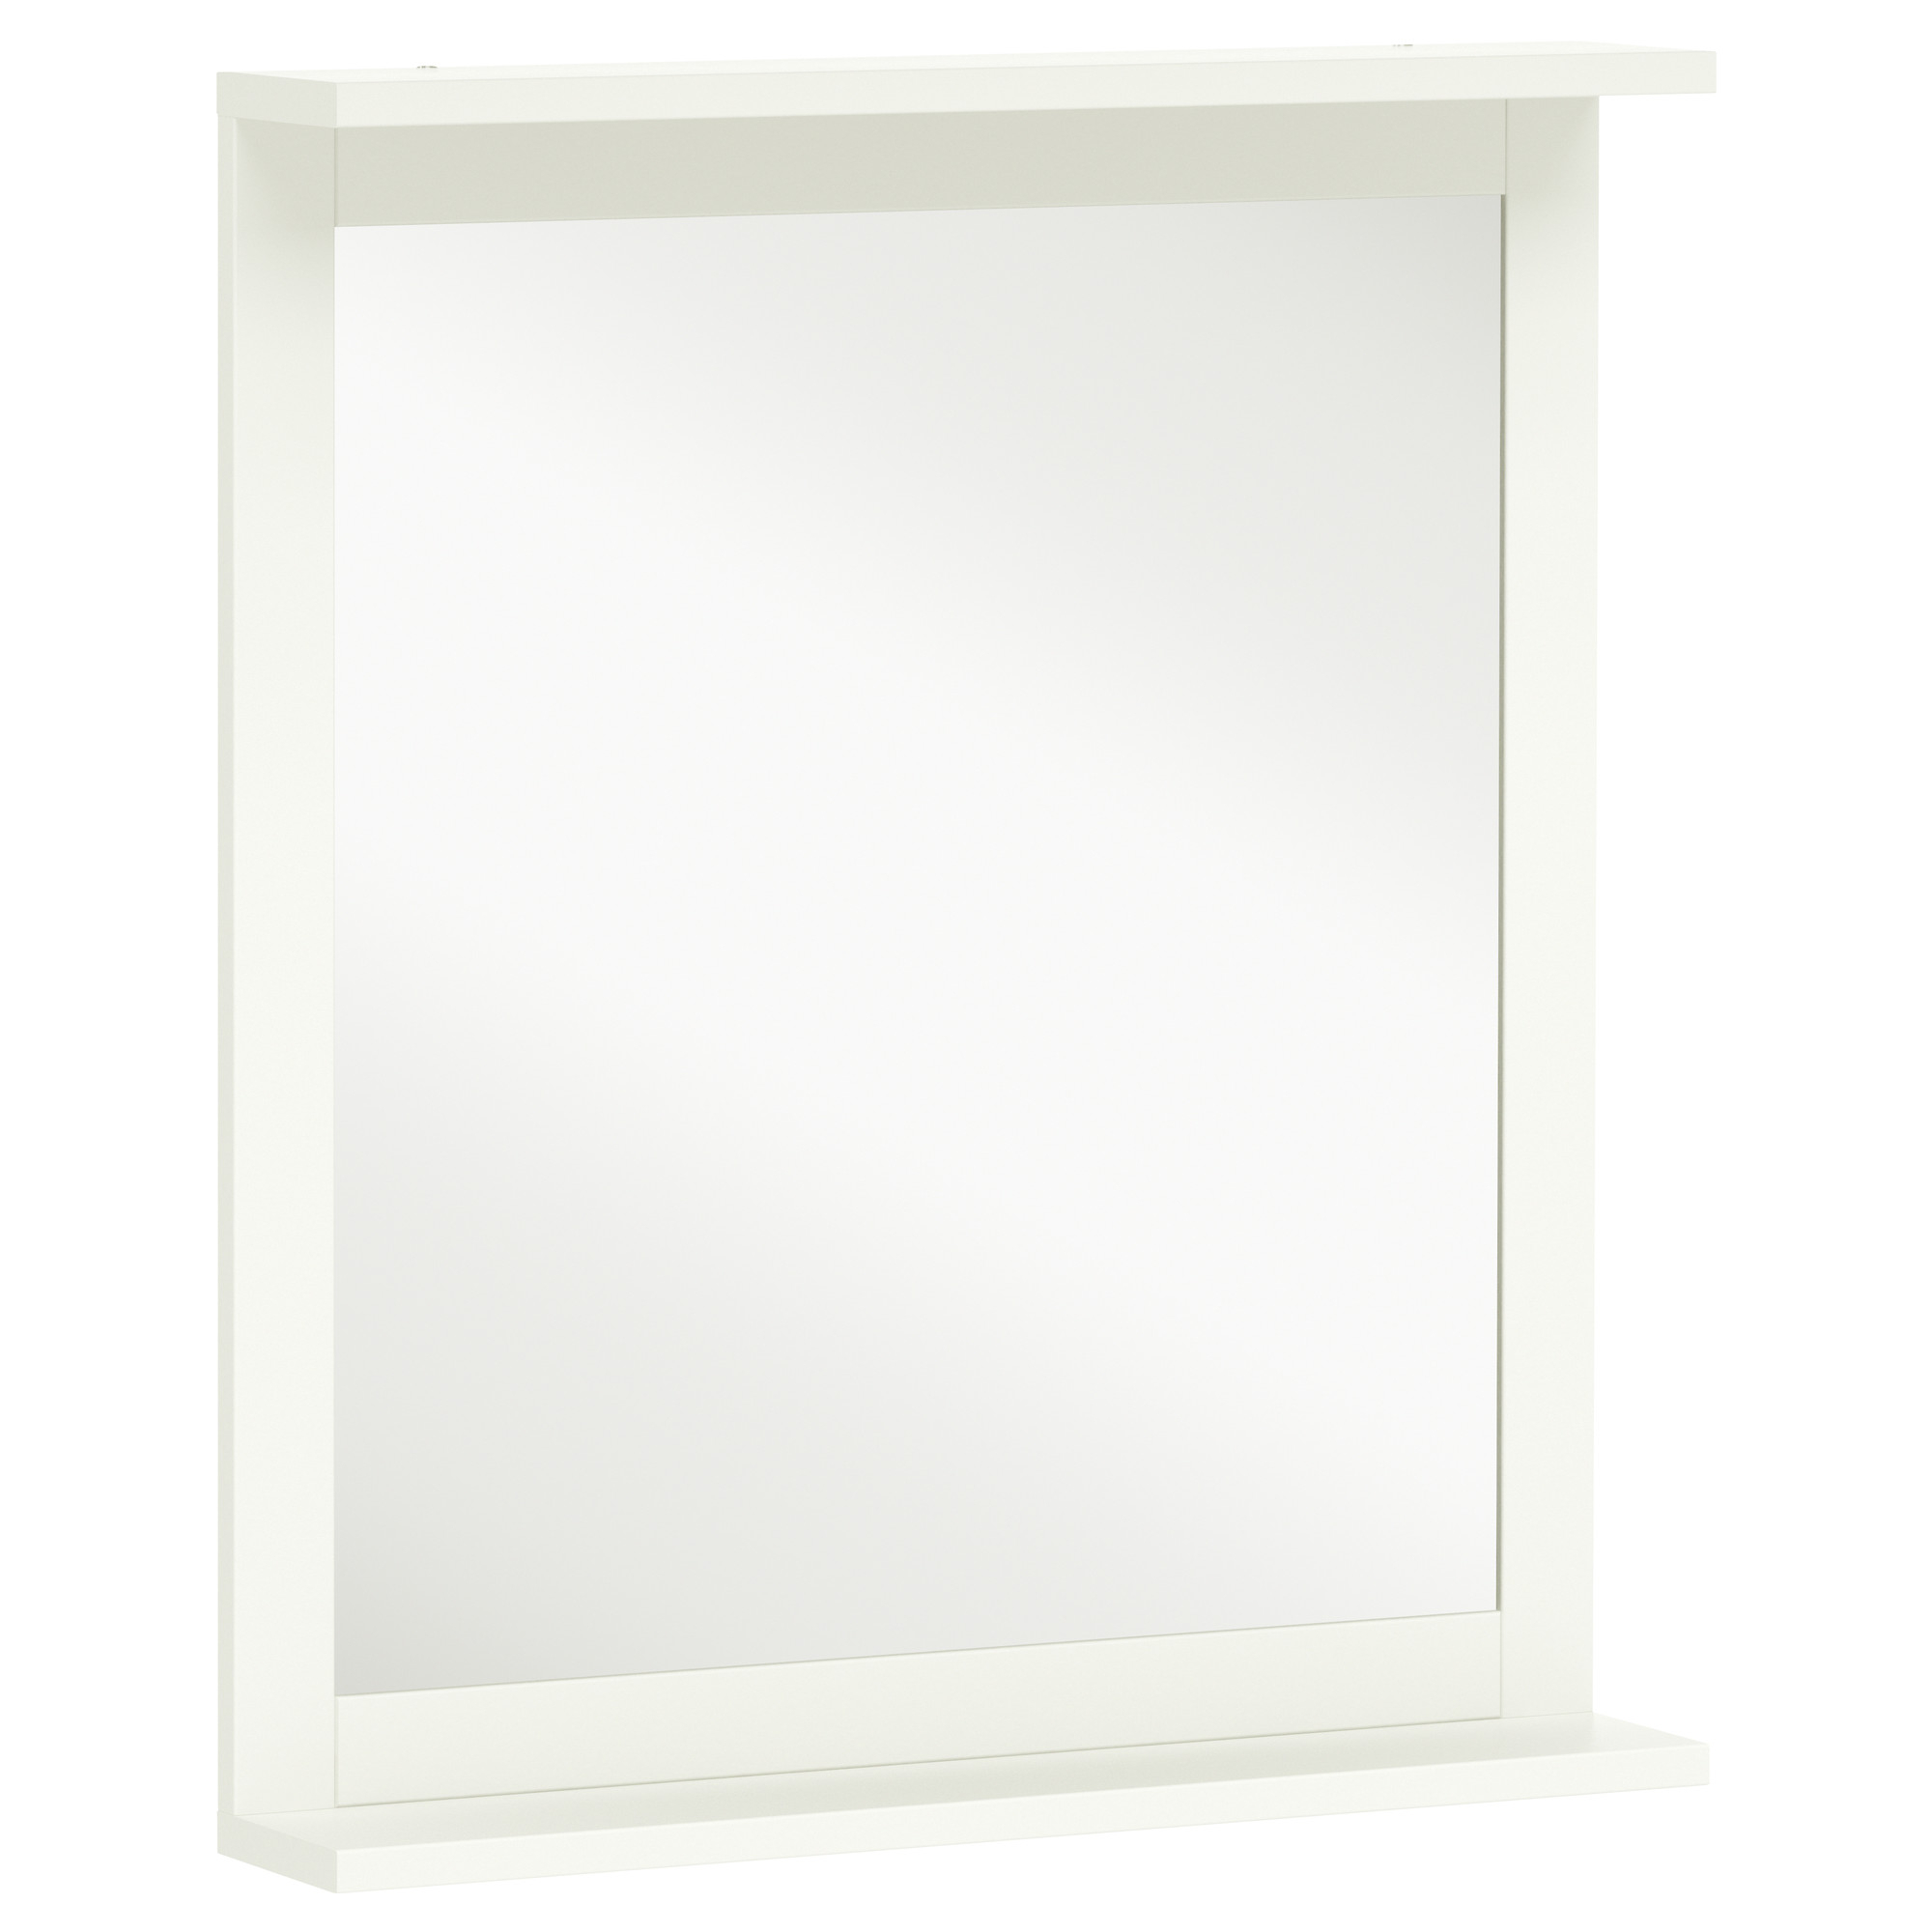 Top 34 Wonderful Bathroom Mirror Shelf Silveran With Ikea Inside Best And Newest Ikea Large Wall Mirrors (View 18 of 20)